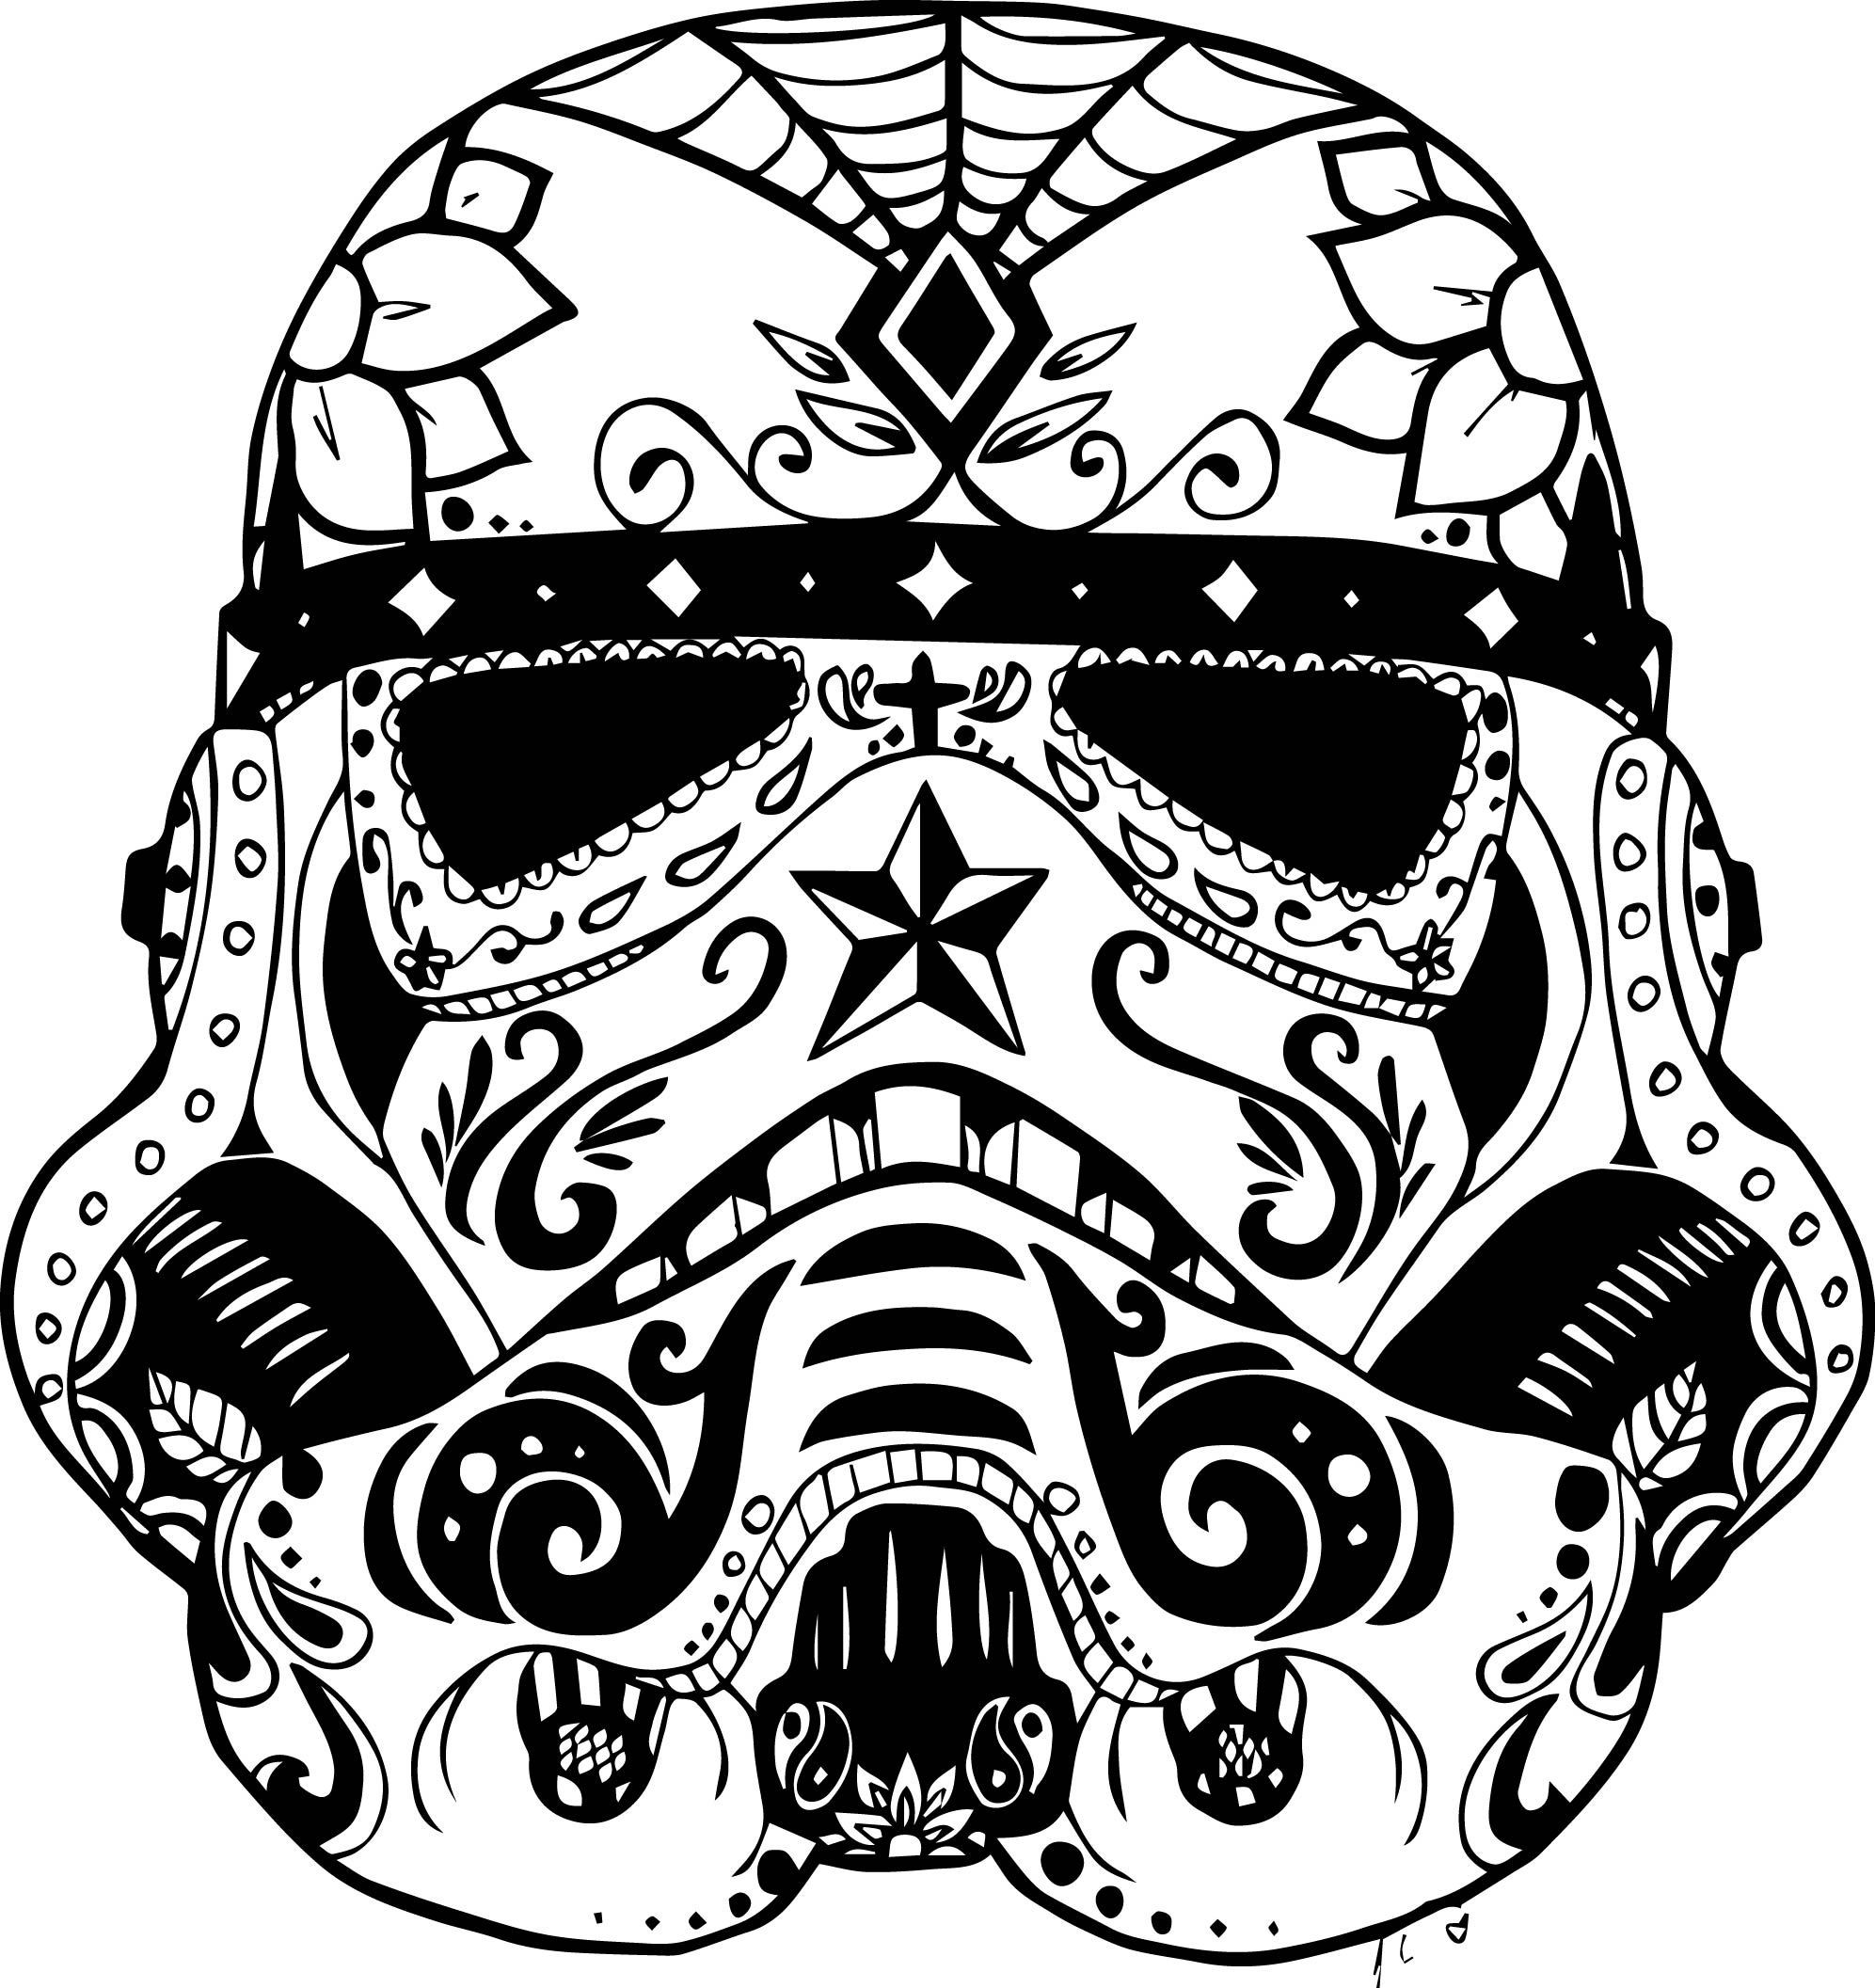 stars for coloring lego star wars coloring pages best coloring pages for kids stars coloring for